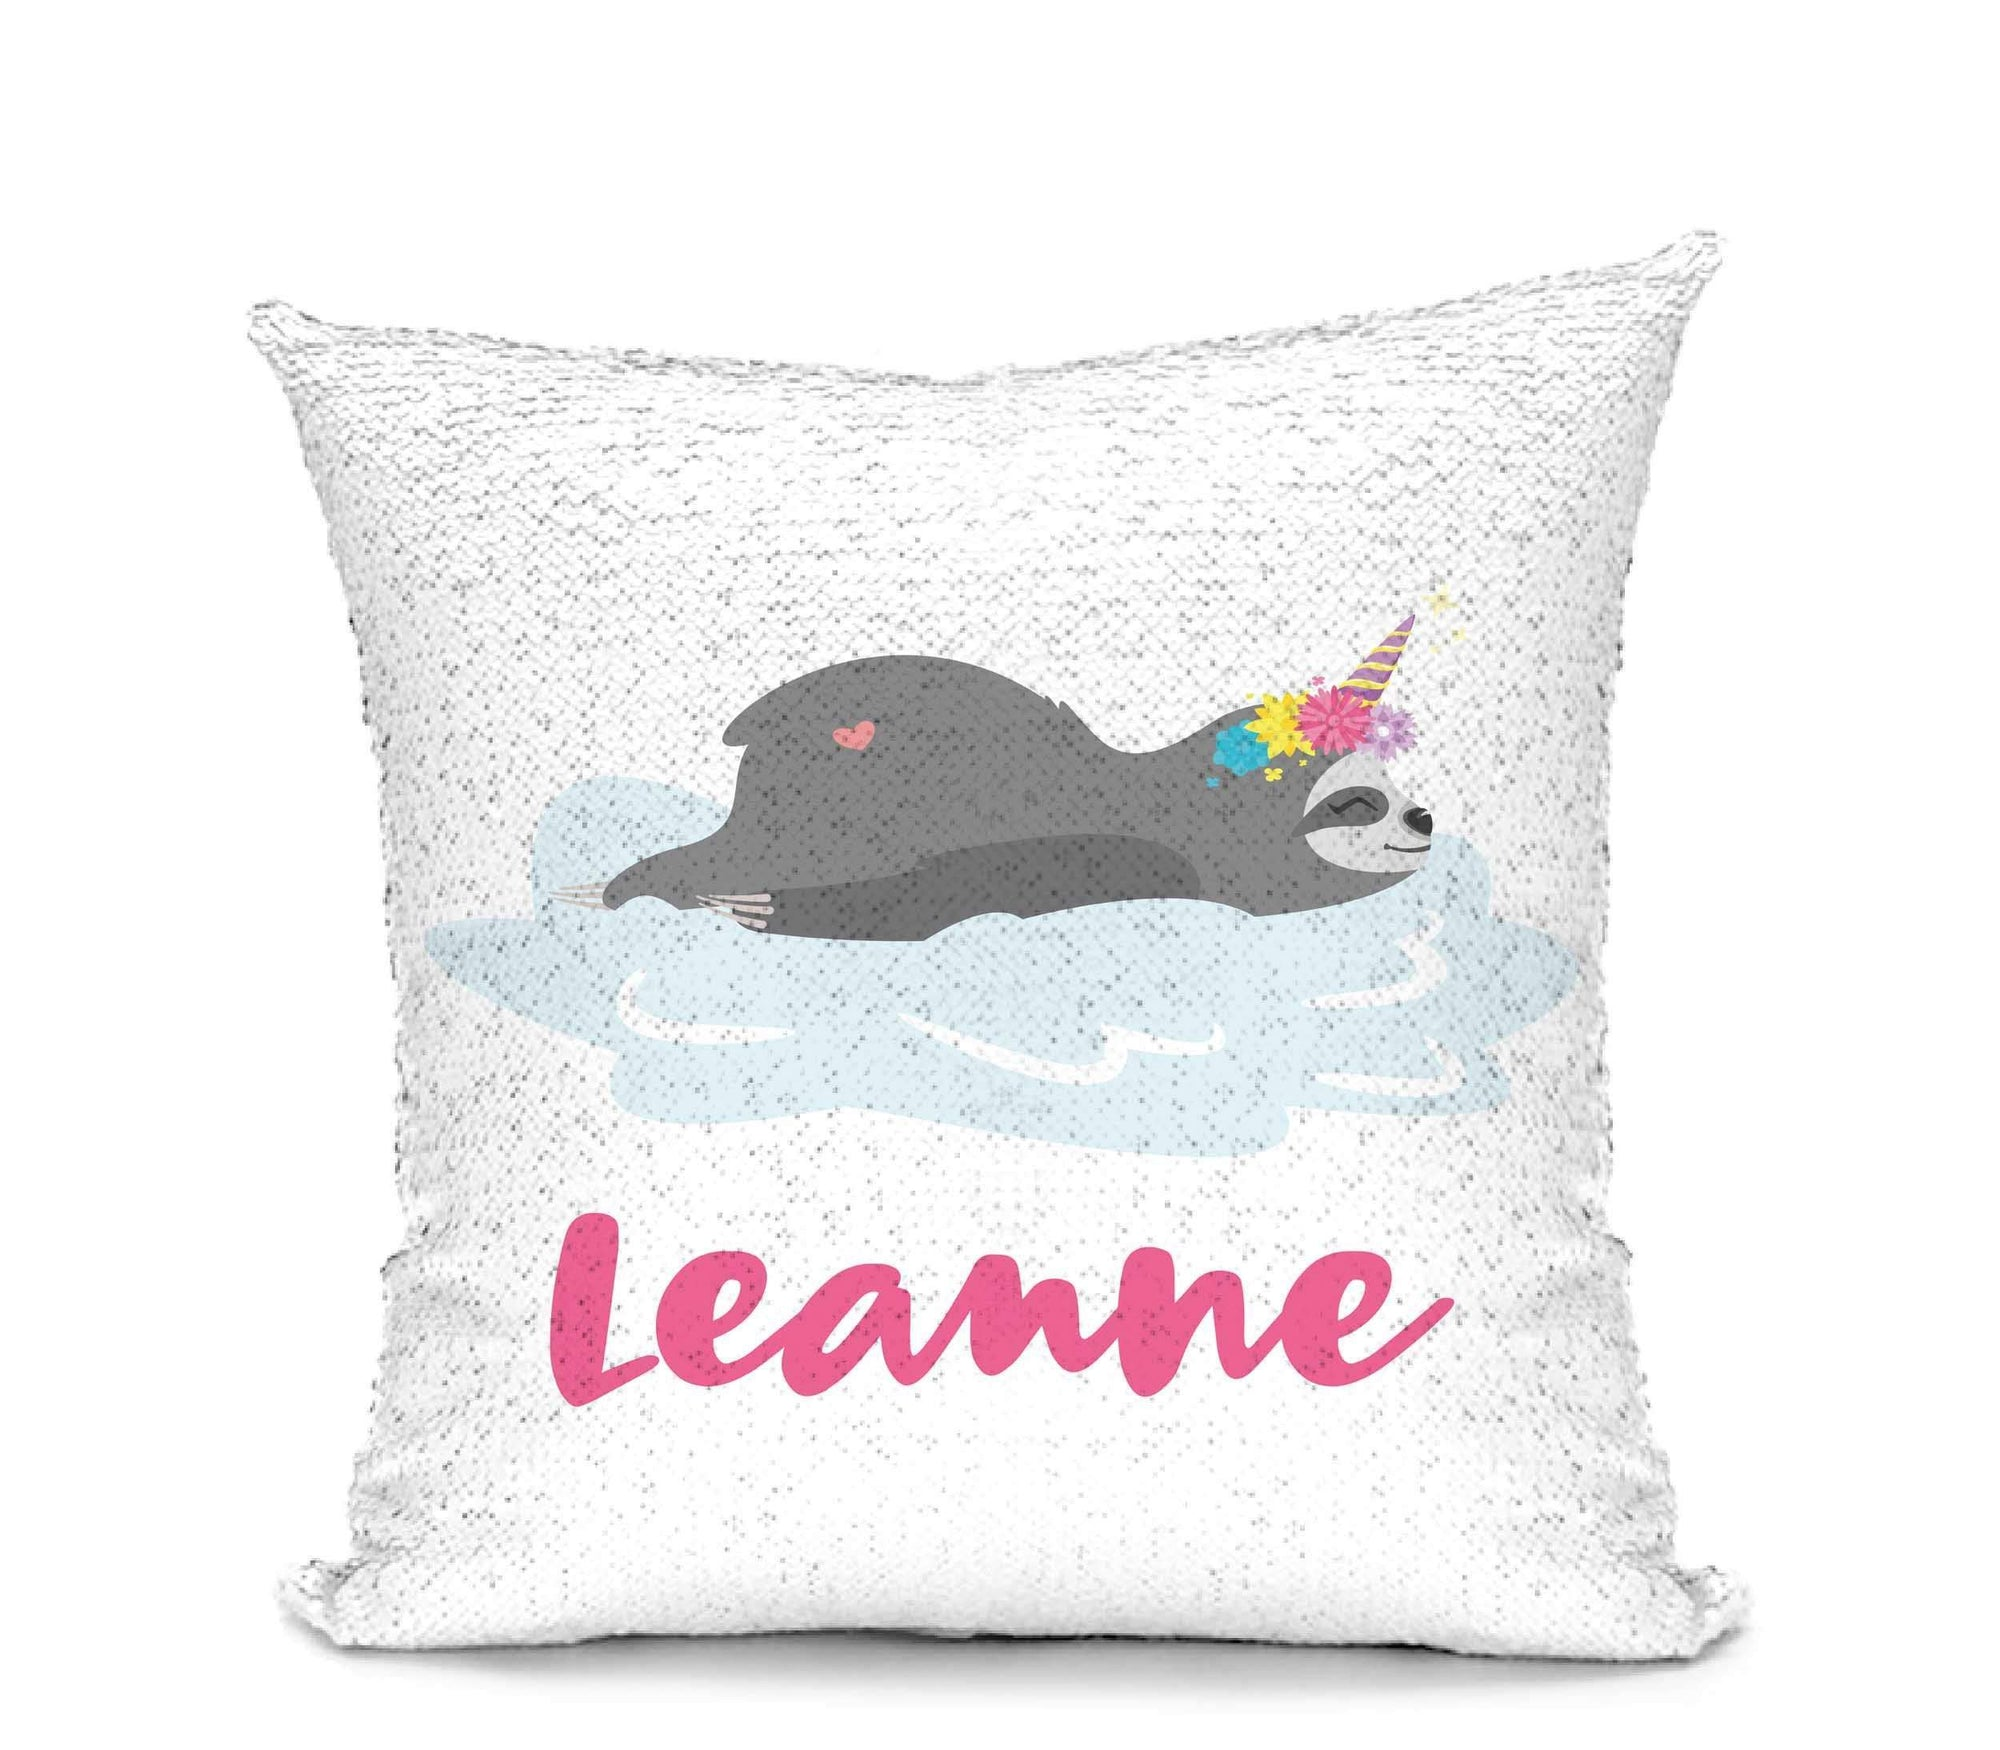 Leanne & Co. Pillow Slothicorn Mermaid Sequin Pillow